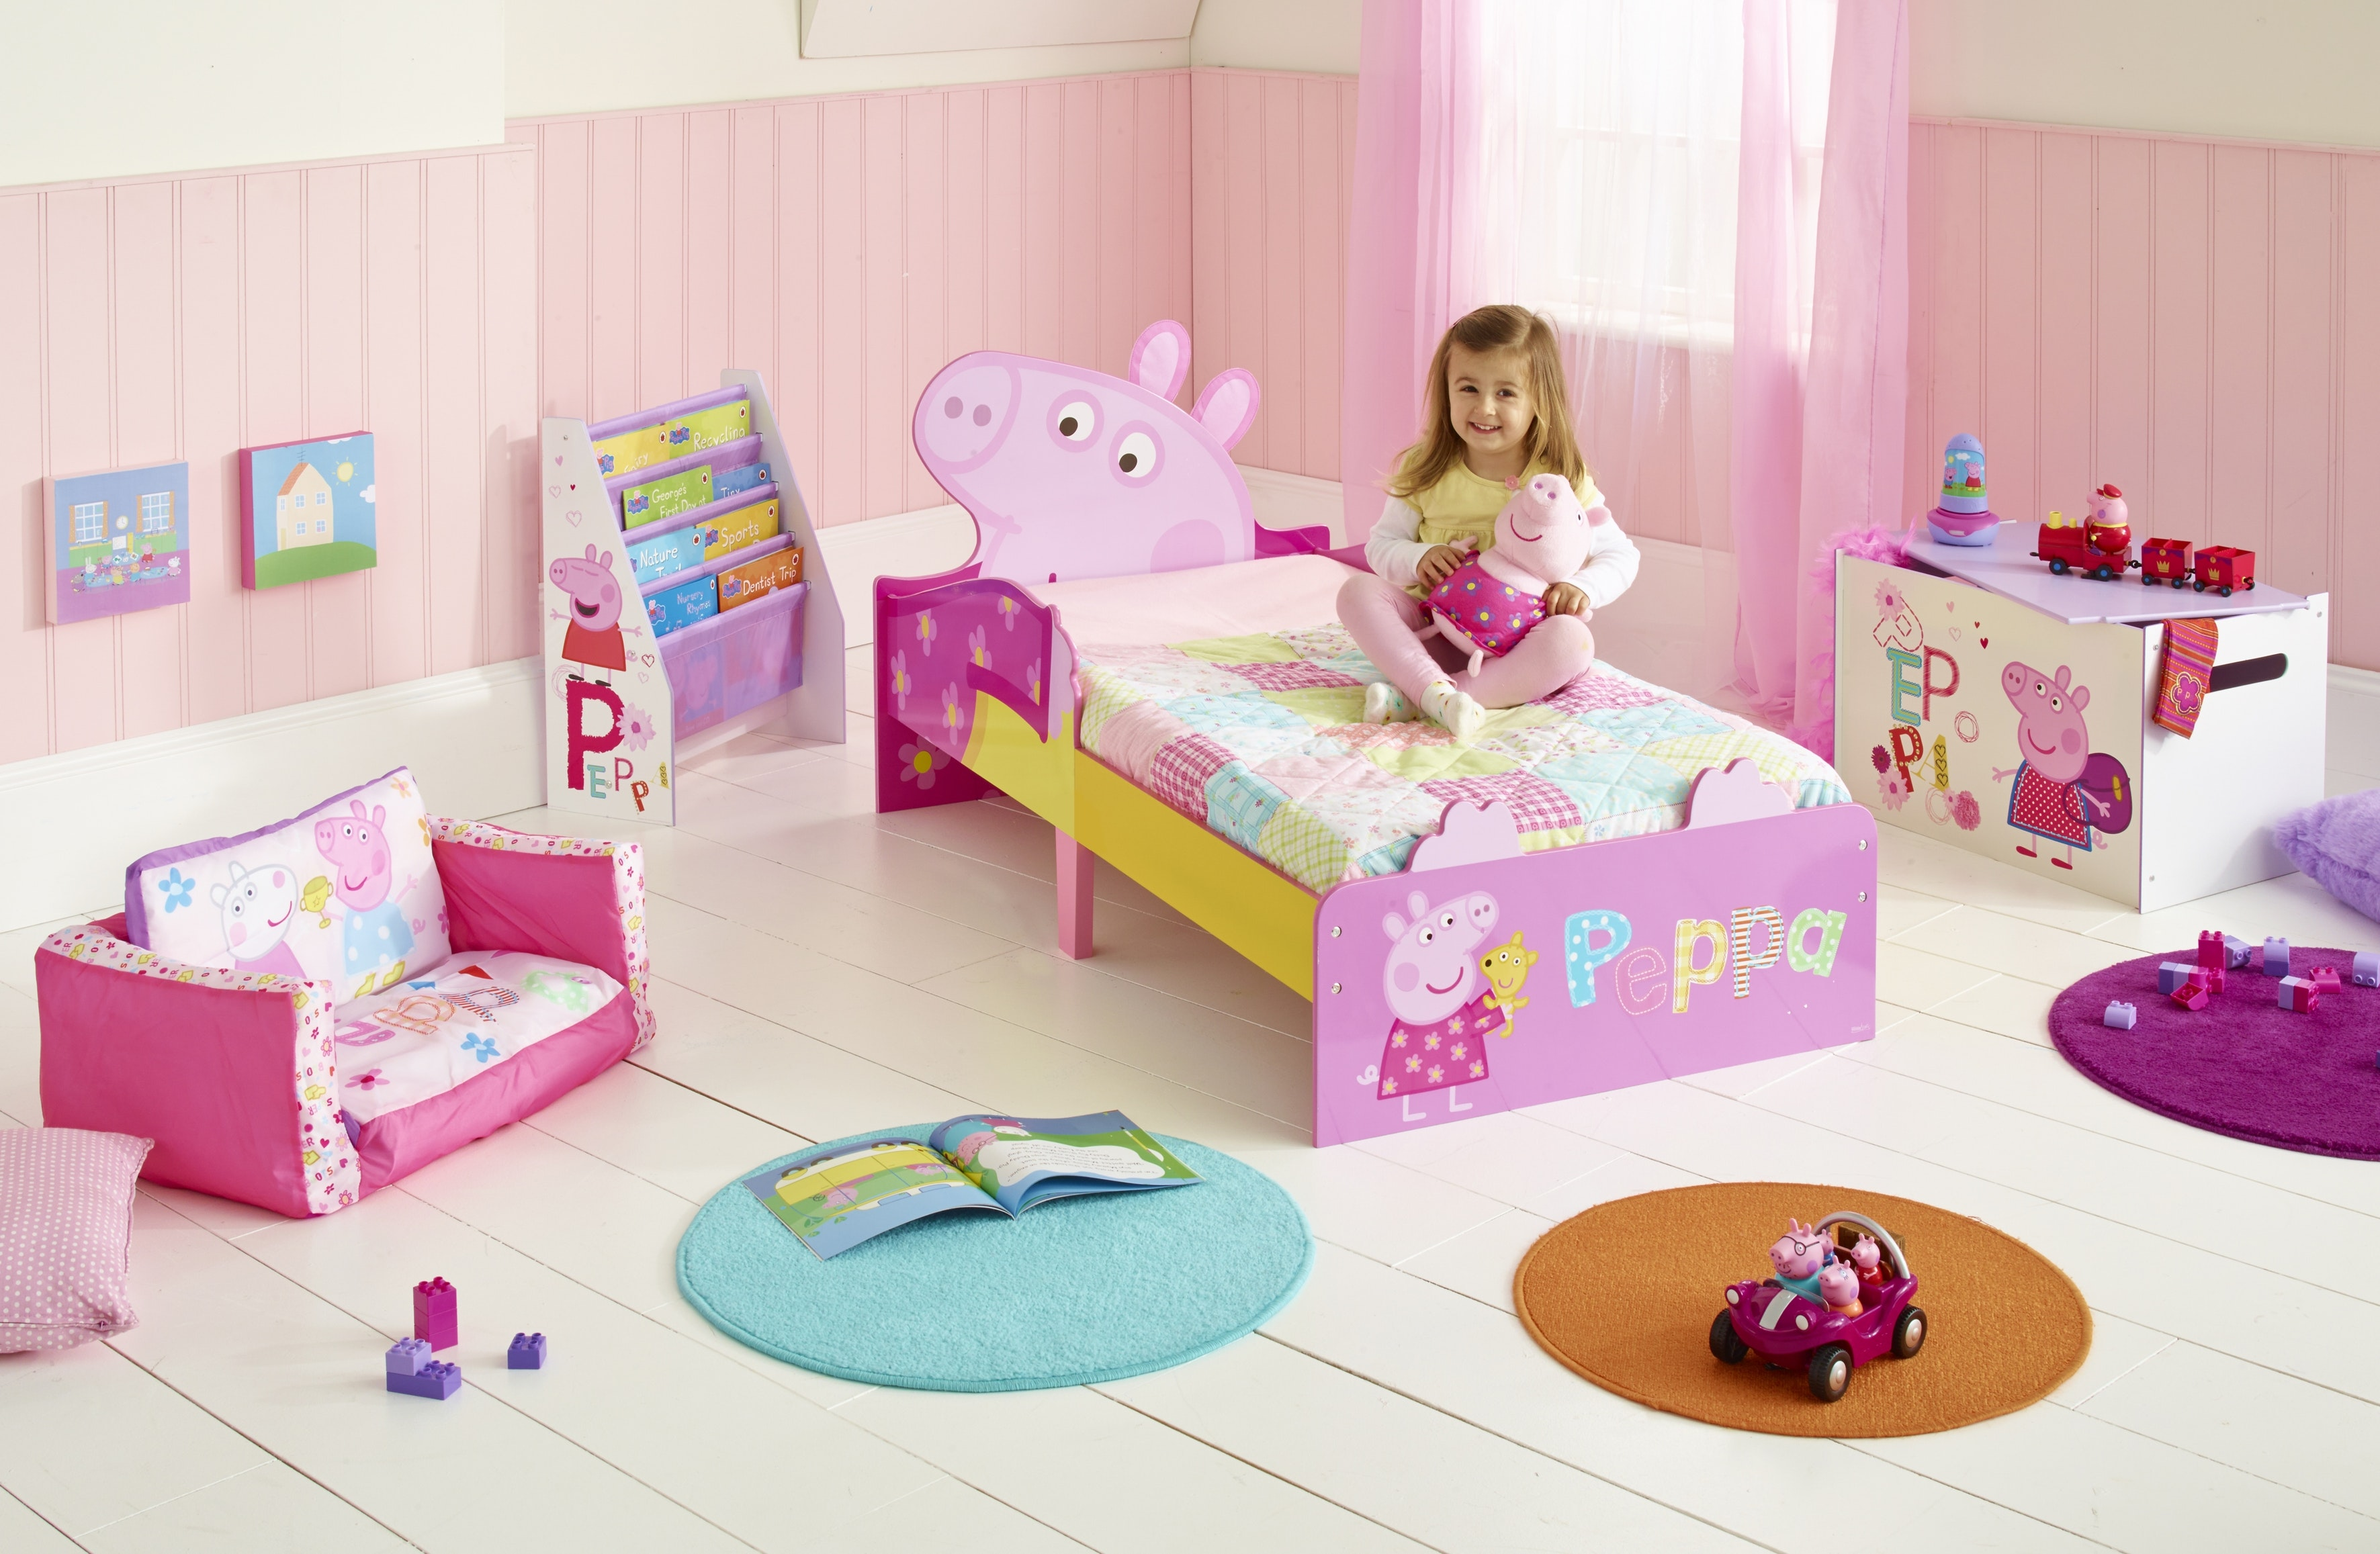 506pip01e peppa pig snuggle time toddler bed 07 jpg